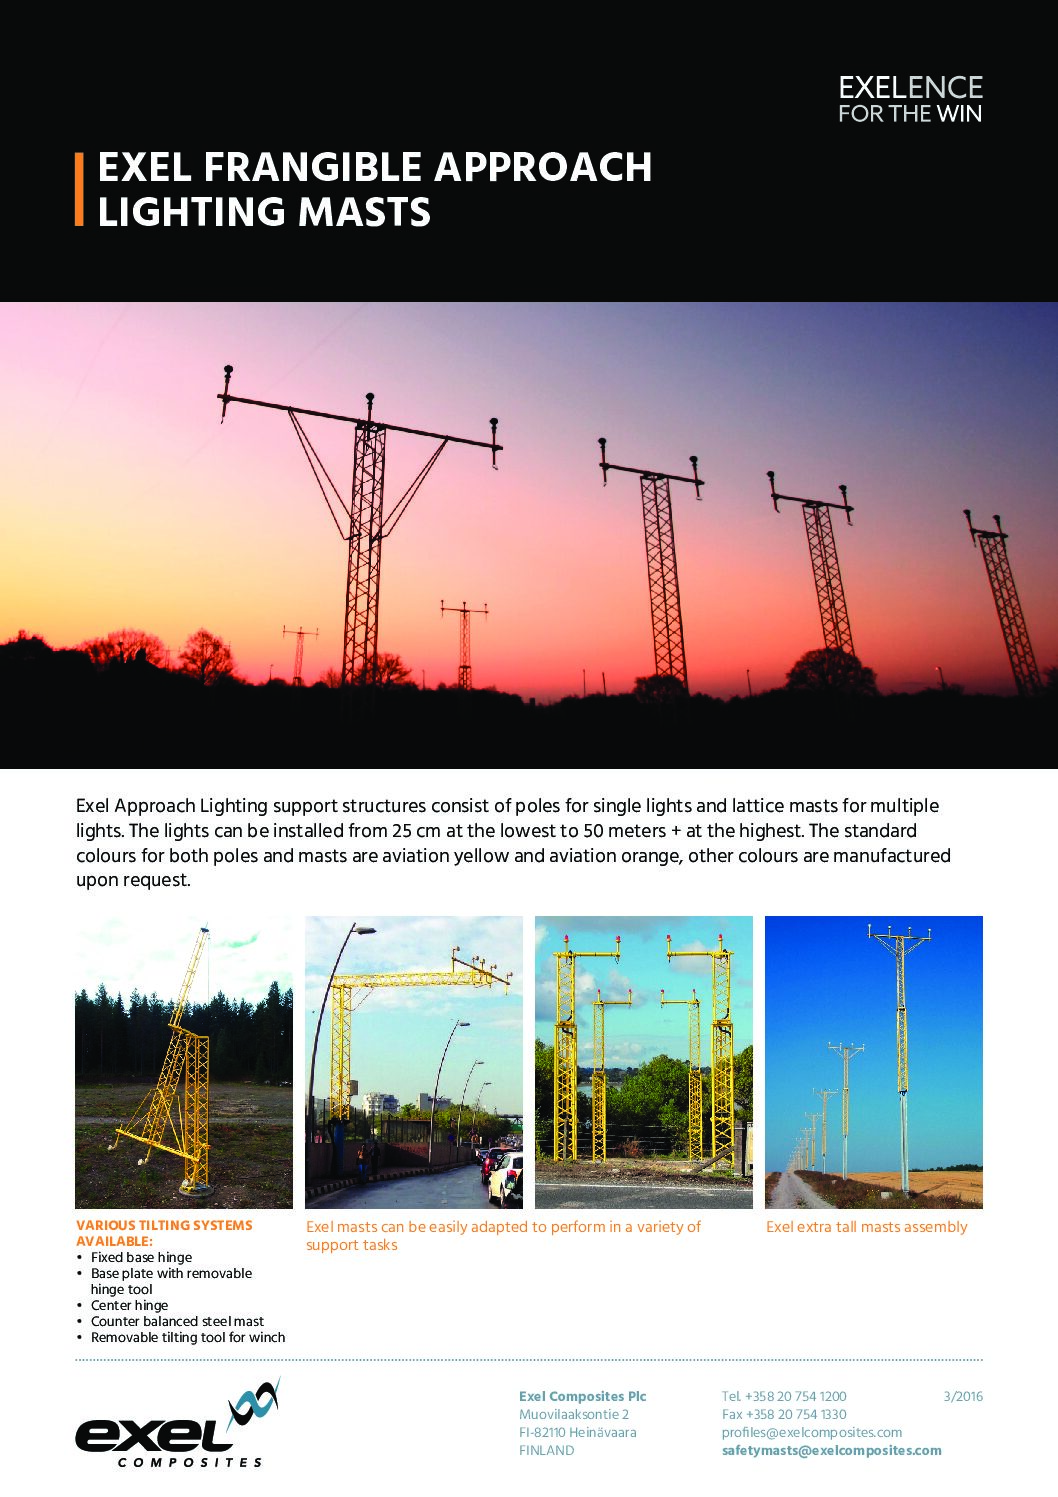 Exel Frangible Approach Lighting Masts